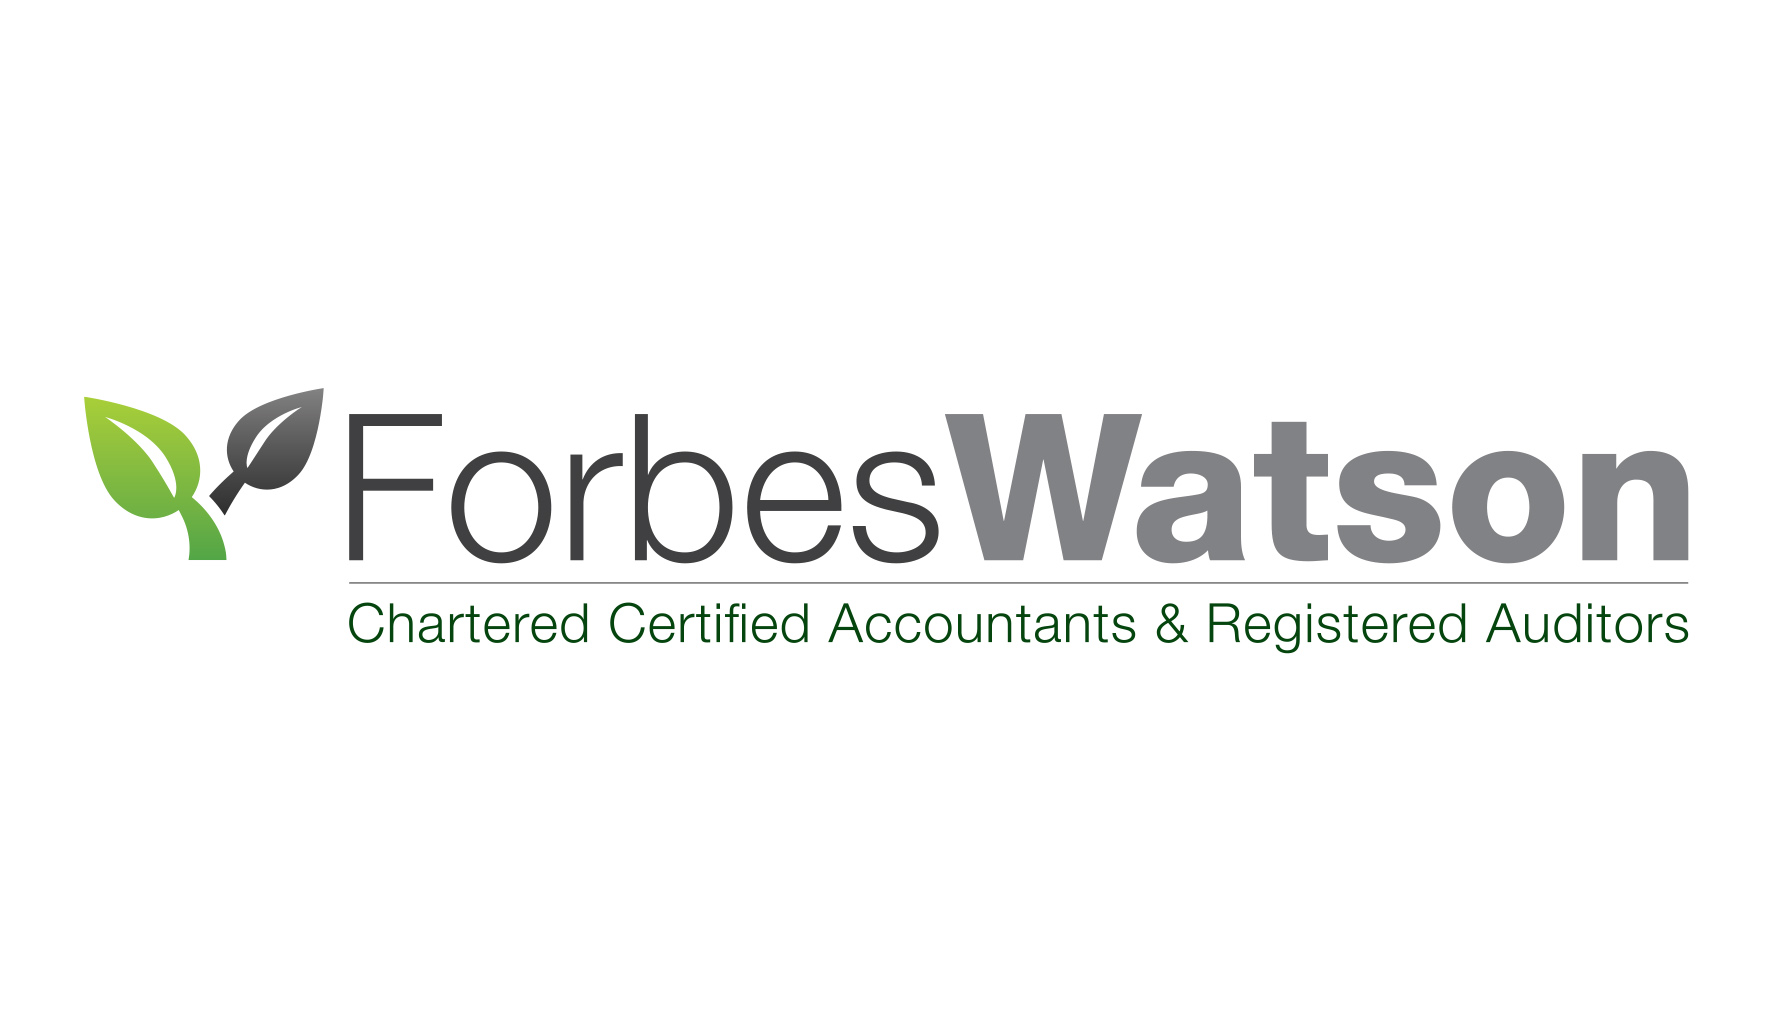 Forbes Watson Chartered Certified Accountants and Registered Auditors